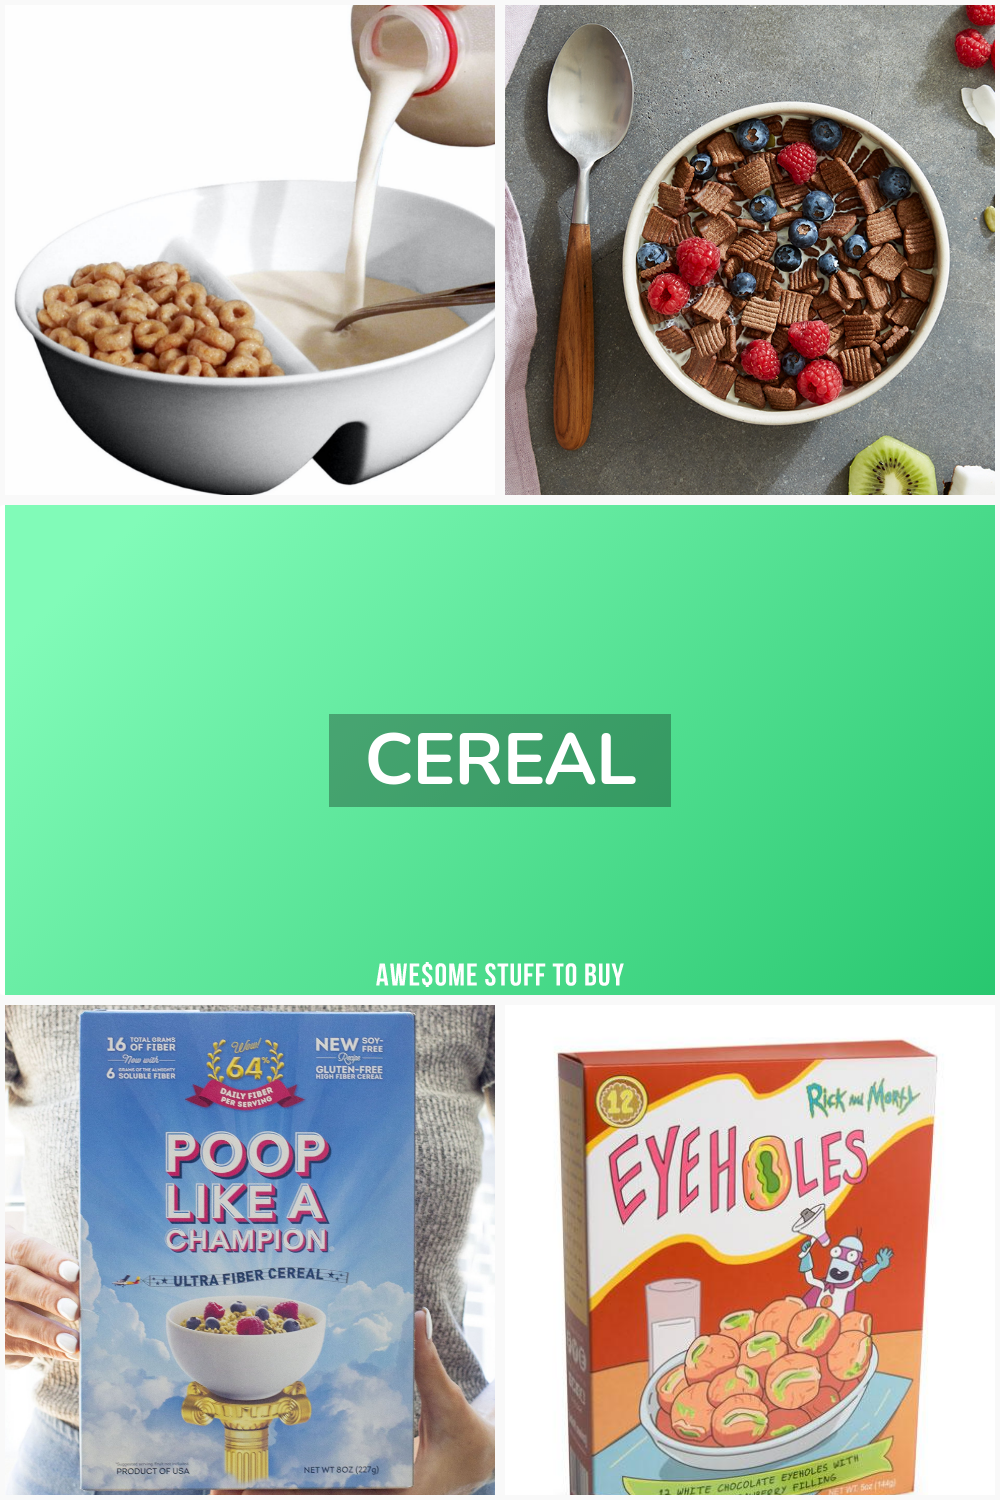 Cereal // Awesome Stuff to Buy